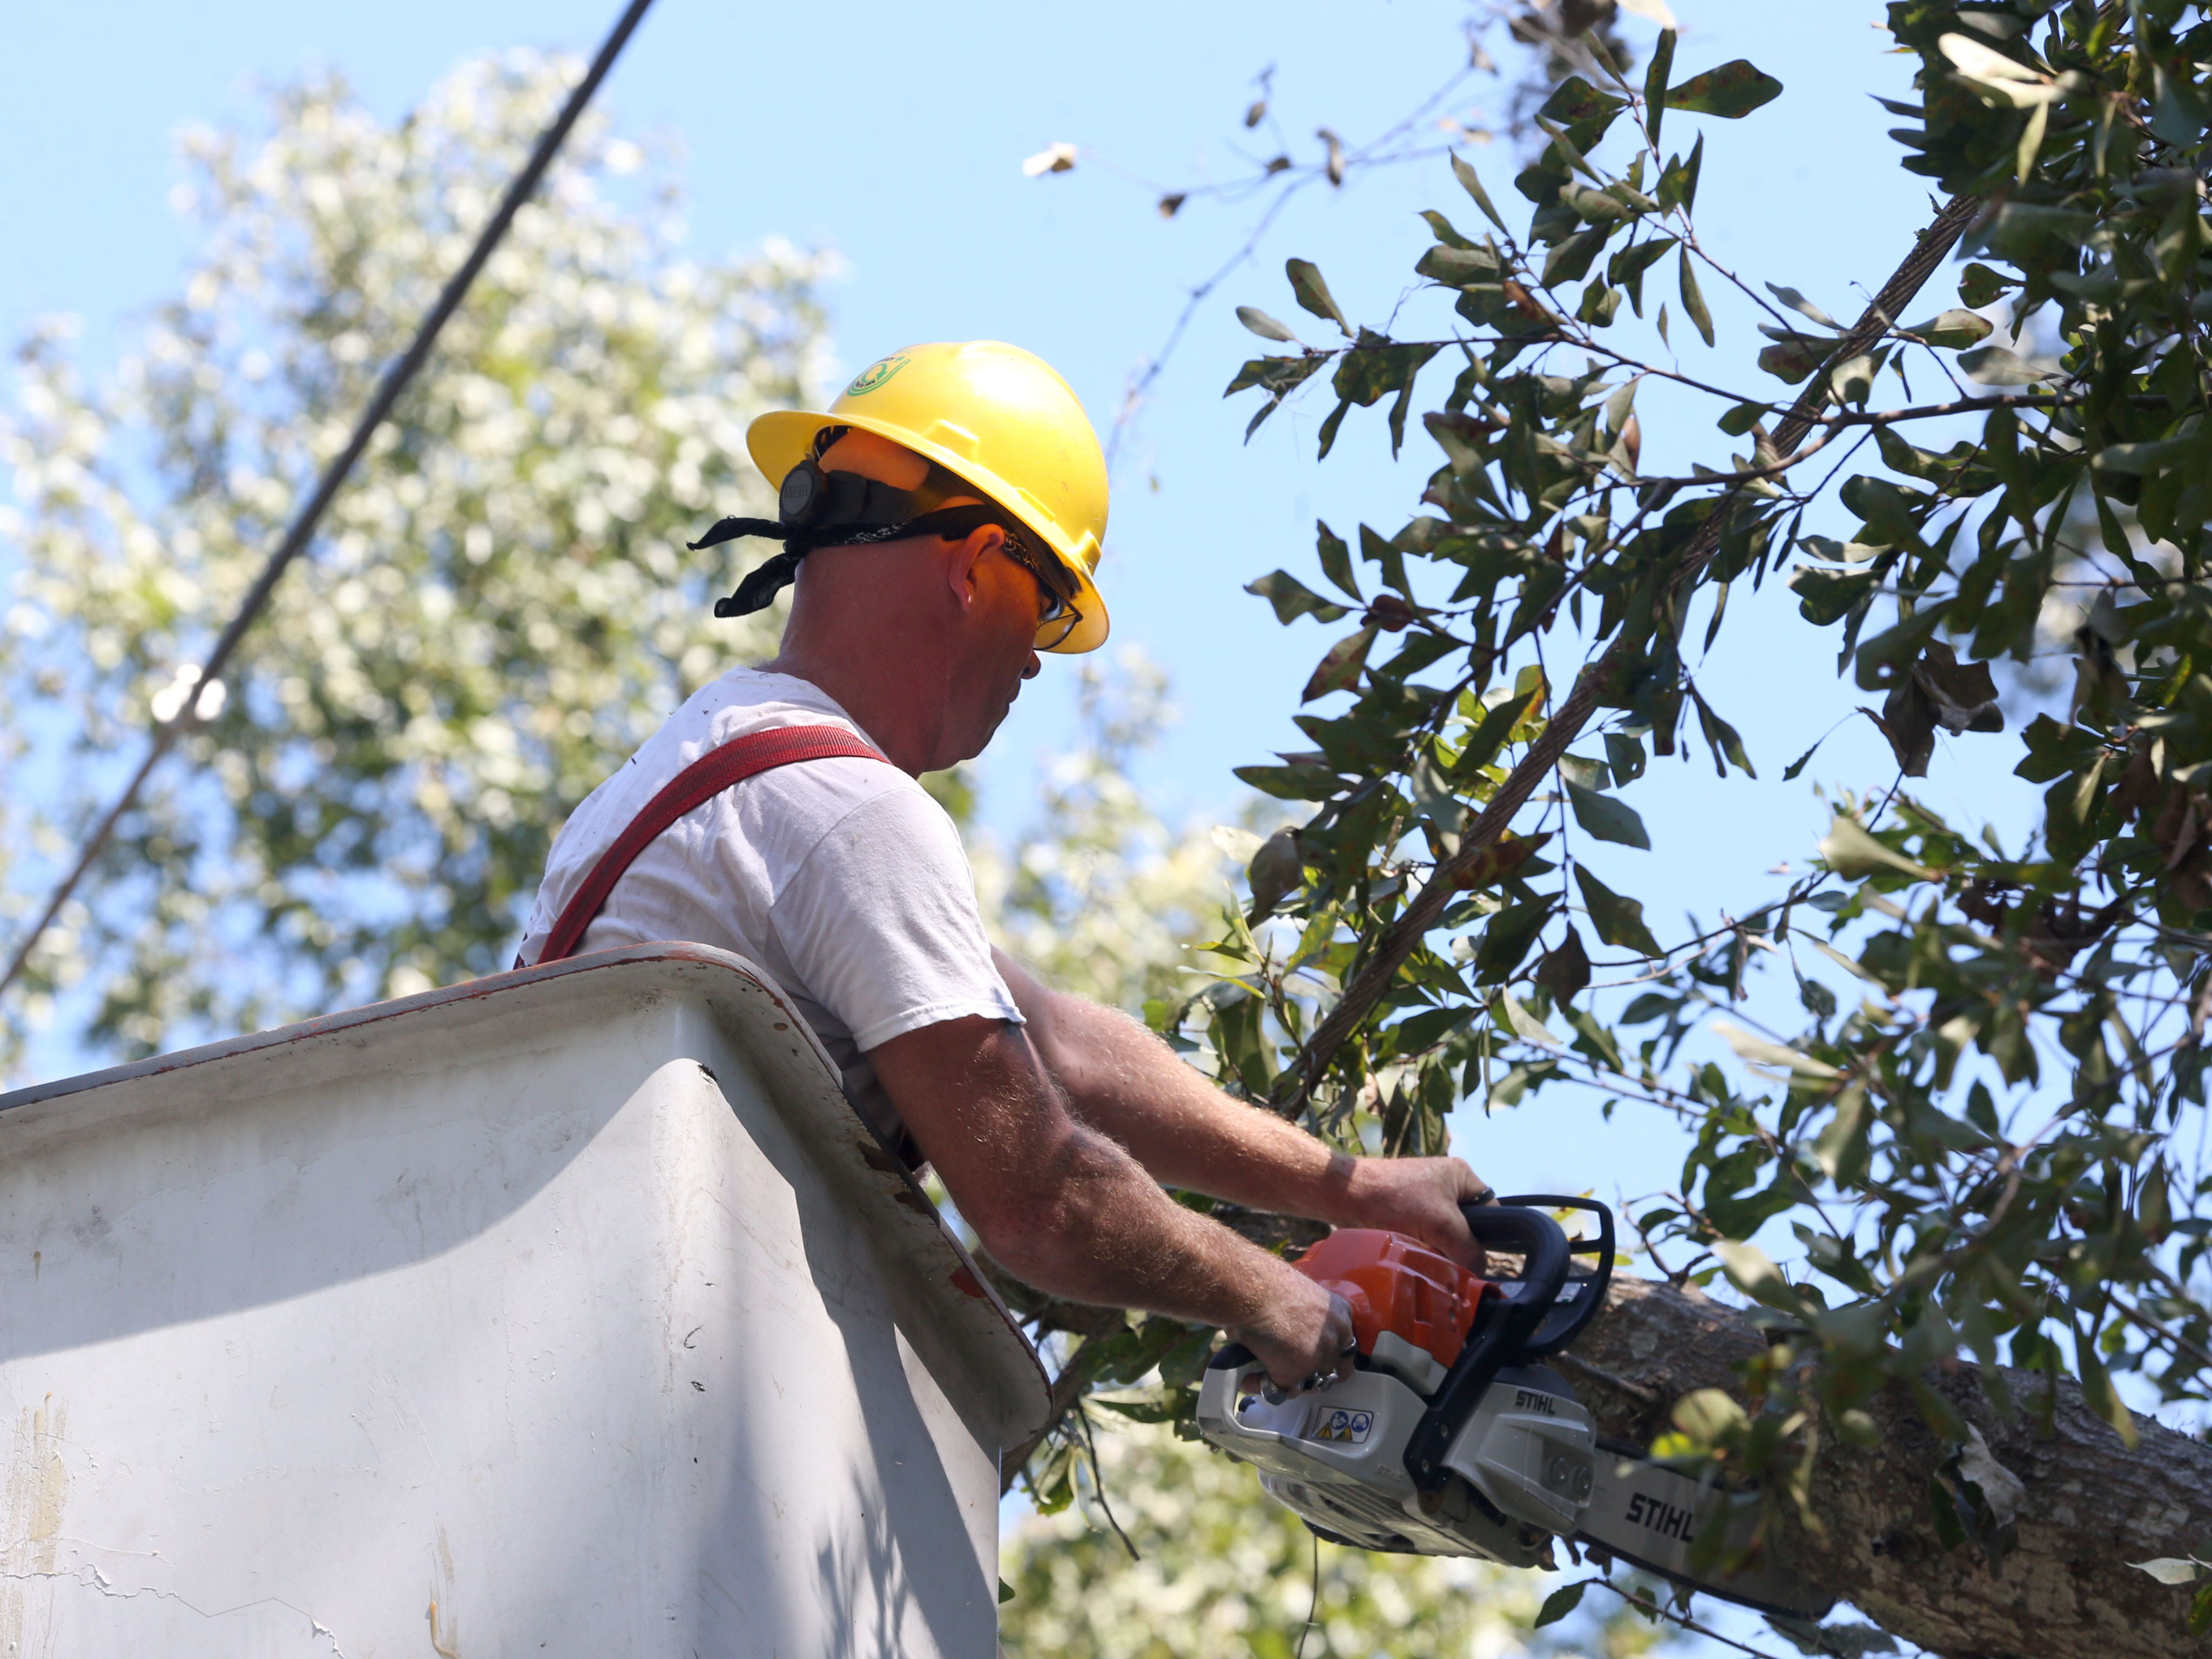 Tree service men work on removing branches from power lines  on Oct. 13, 2018, three days after Hurricane Michael struck the Florida panhandle.